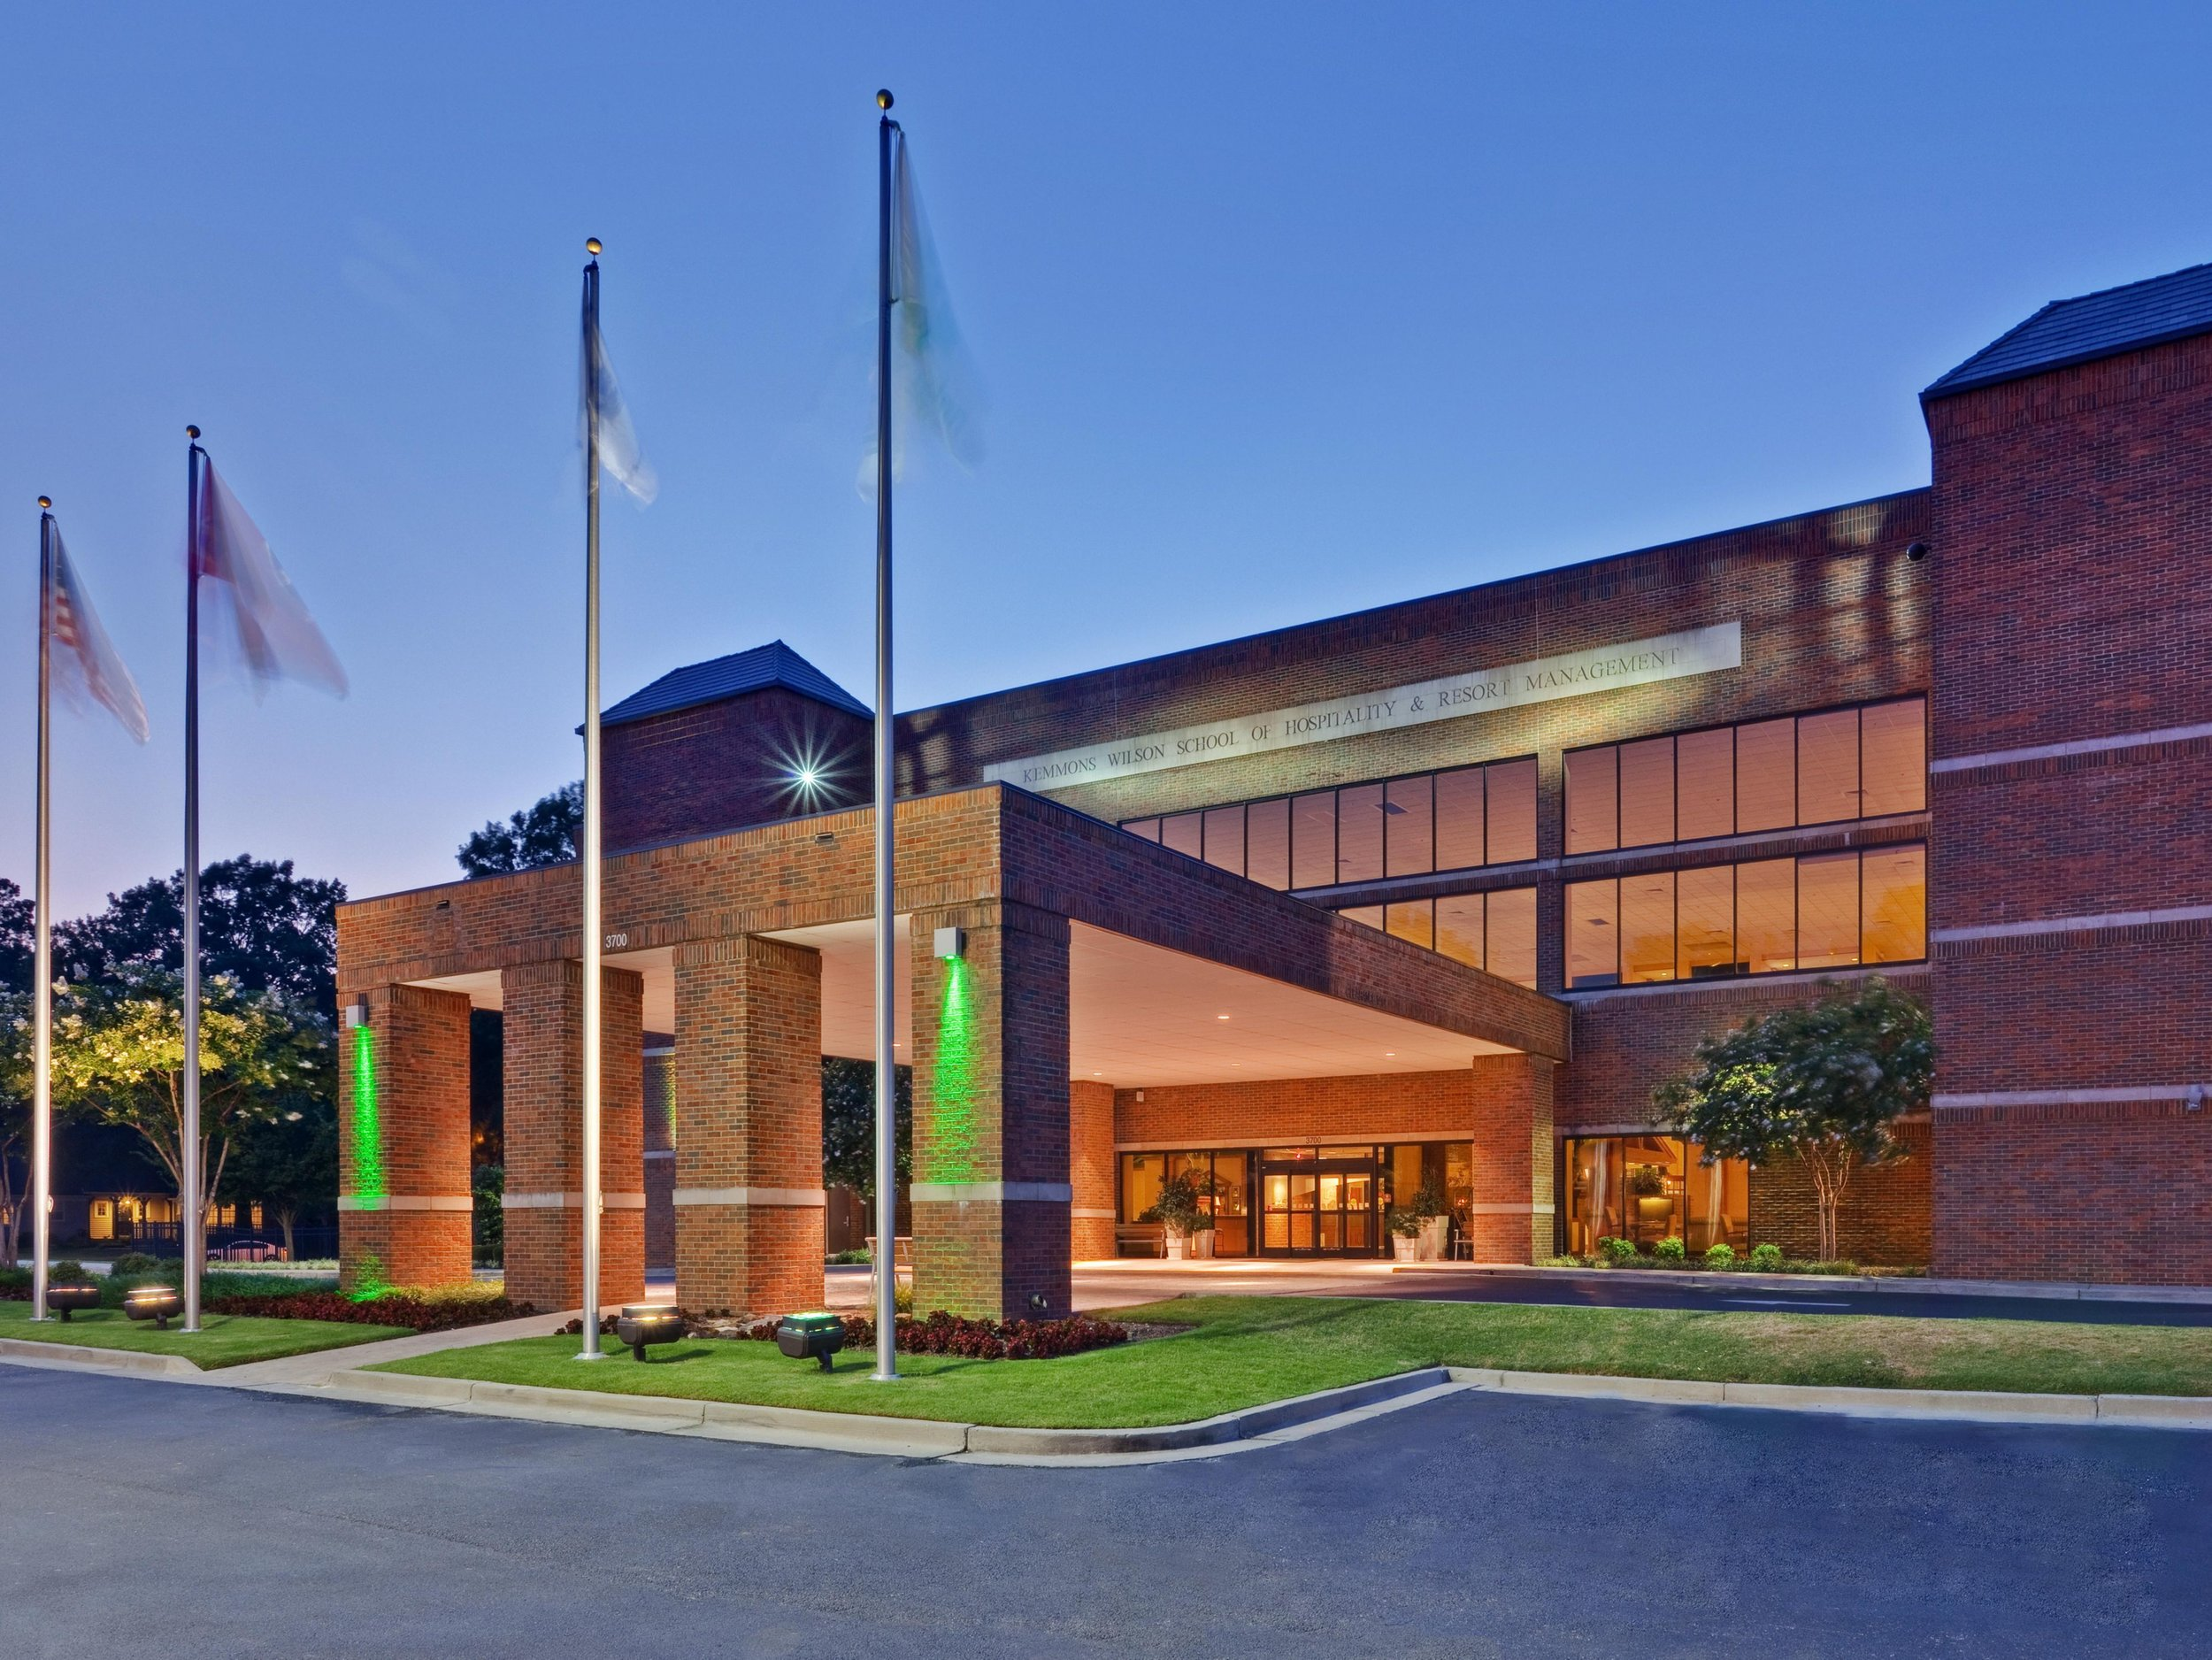 The Holiday Inn at the University of Memphis - 3700 Central Ave, Memphis, TN 38111